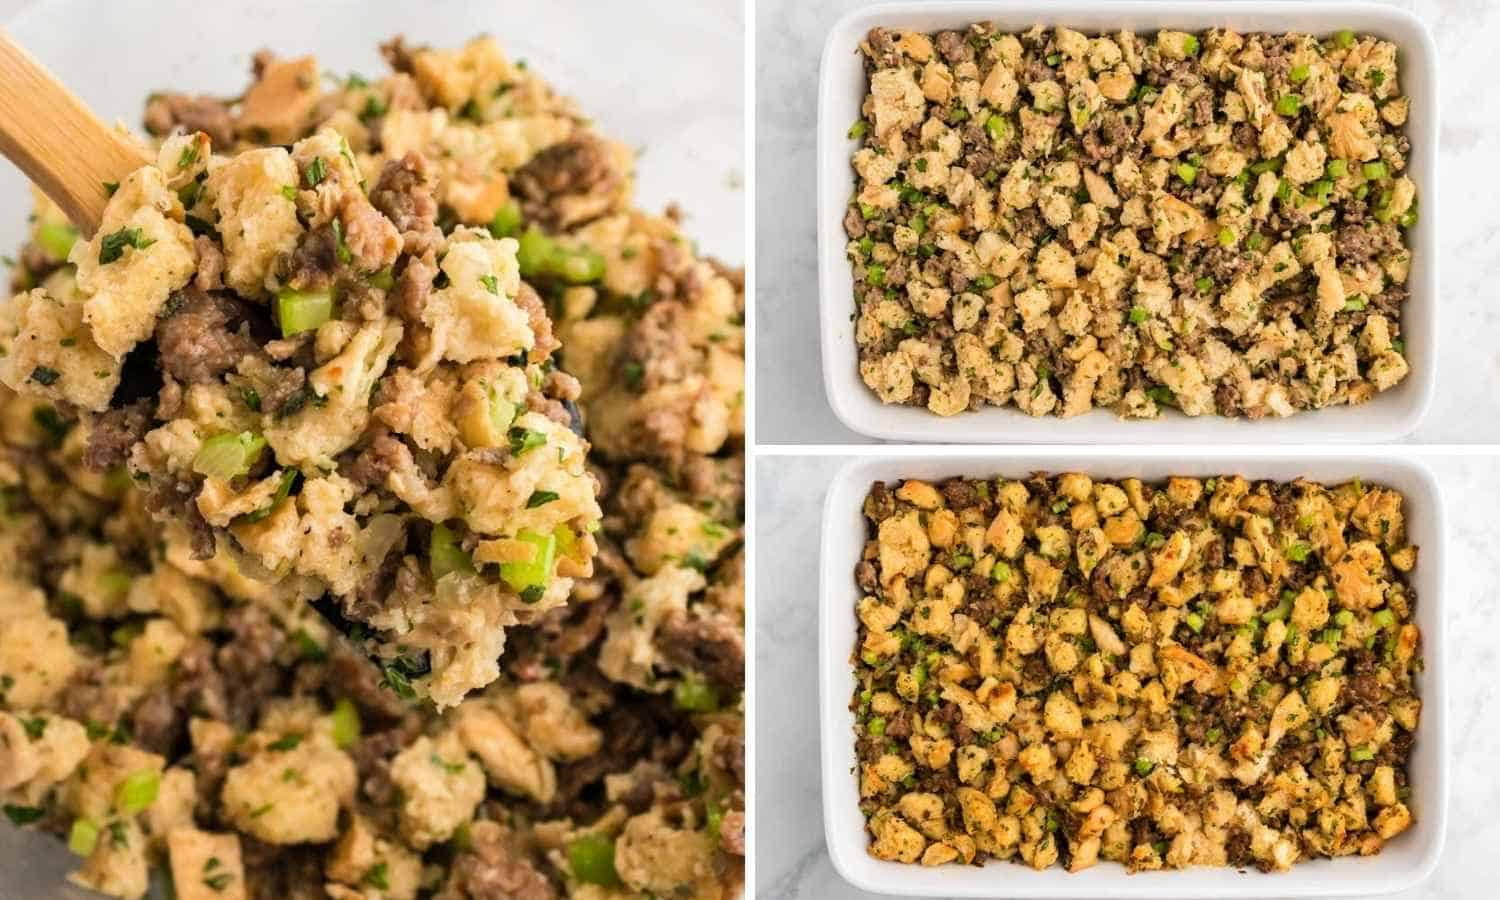 Collage of three images showing the stuffing mixture before and after baking